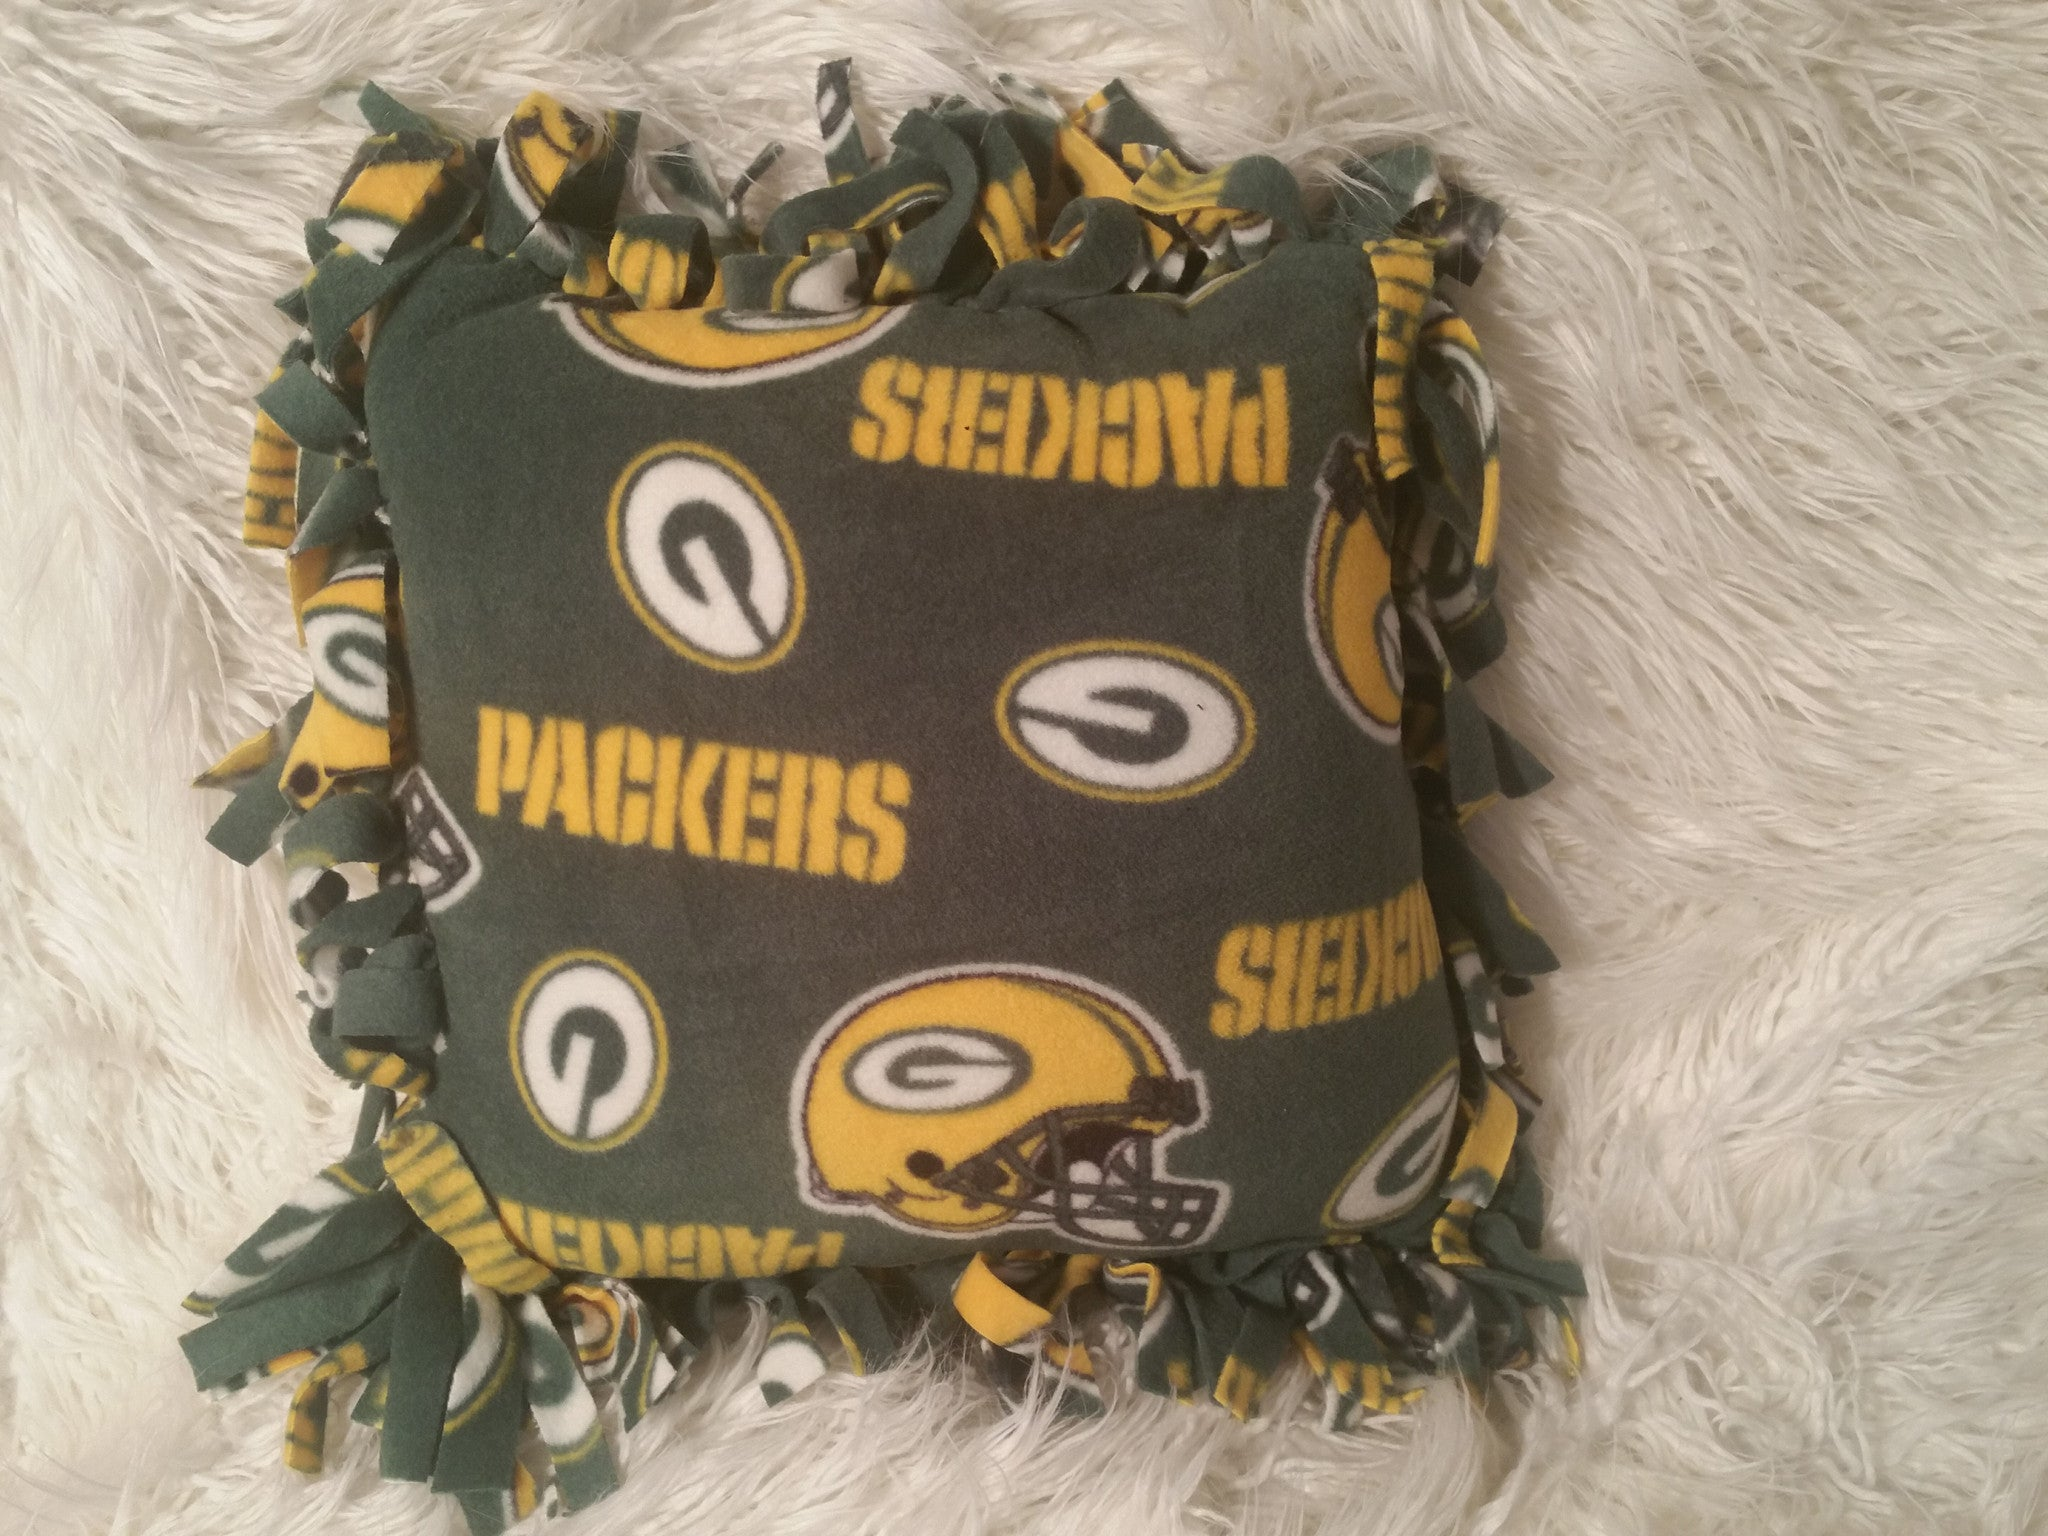 Handmade NFL Fleece Pillows with Fringe - IBL Fashion - 6